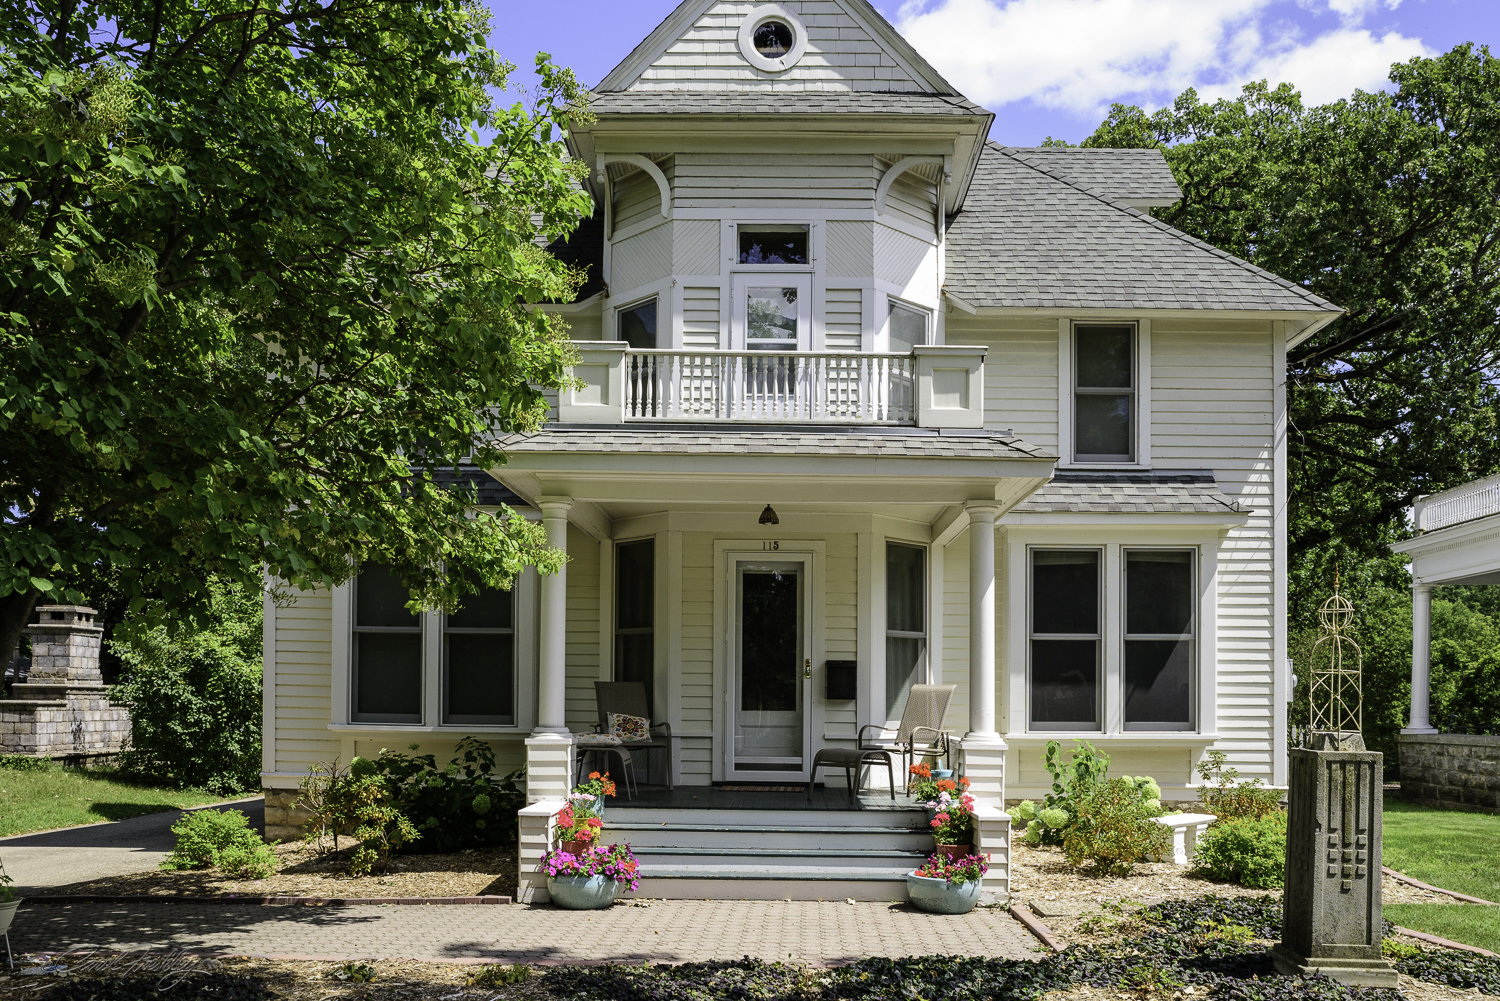 This is listed as the Richardson / Page House, built before 1905. It has a lot of style features but was not identified as any particular predominant style. The classical columns may be taken from Queen Ann style homes in Mason City.